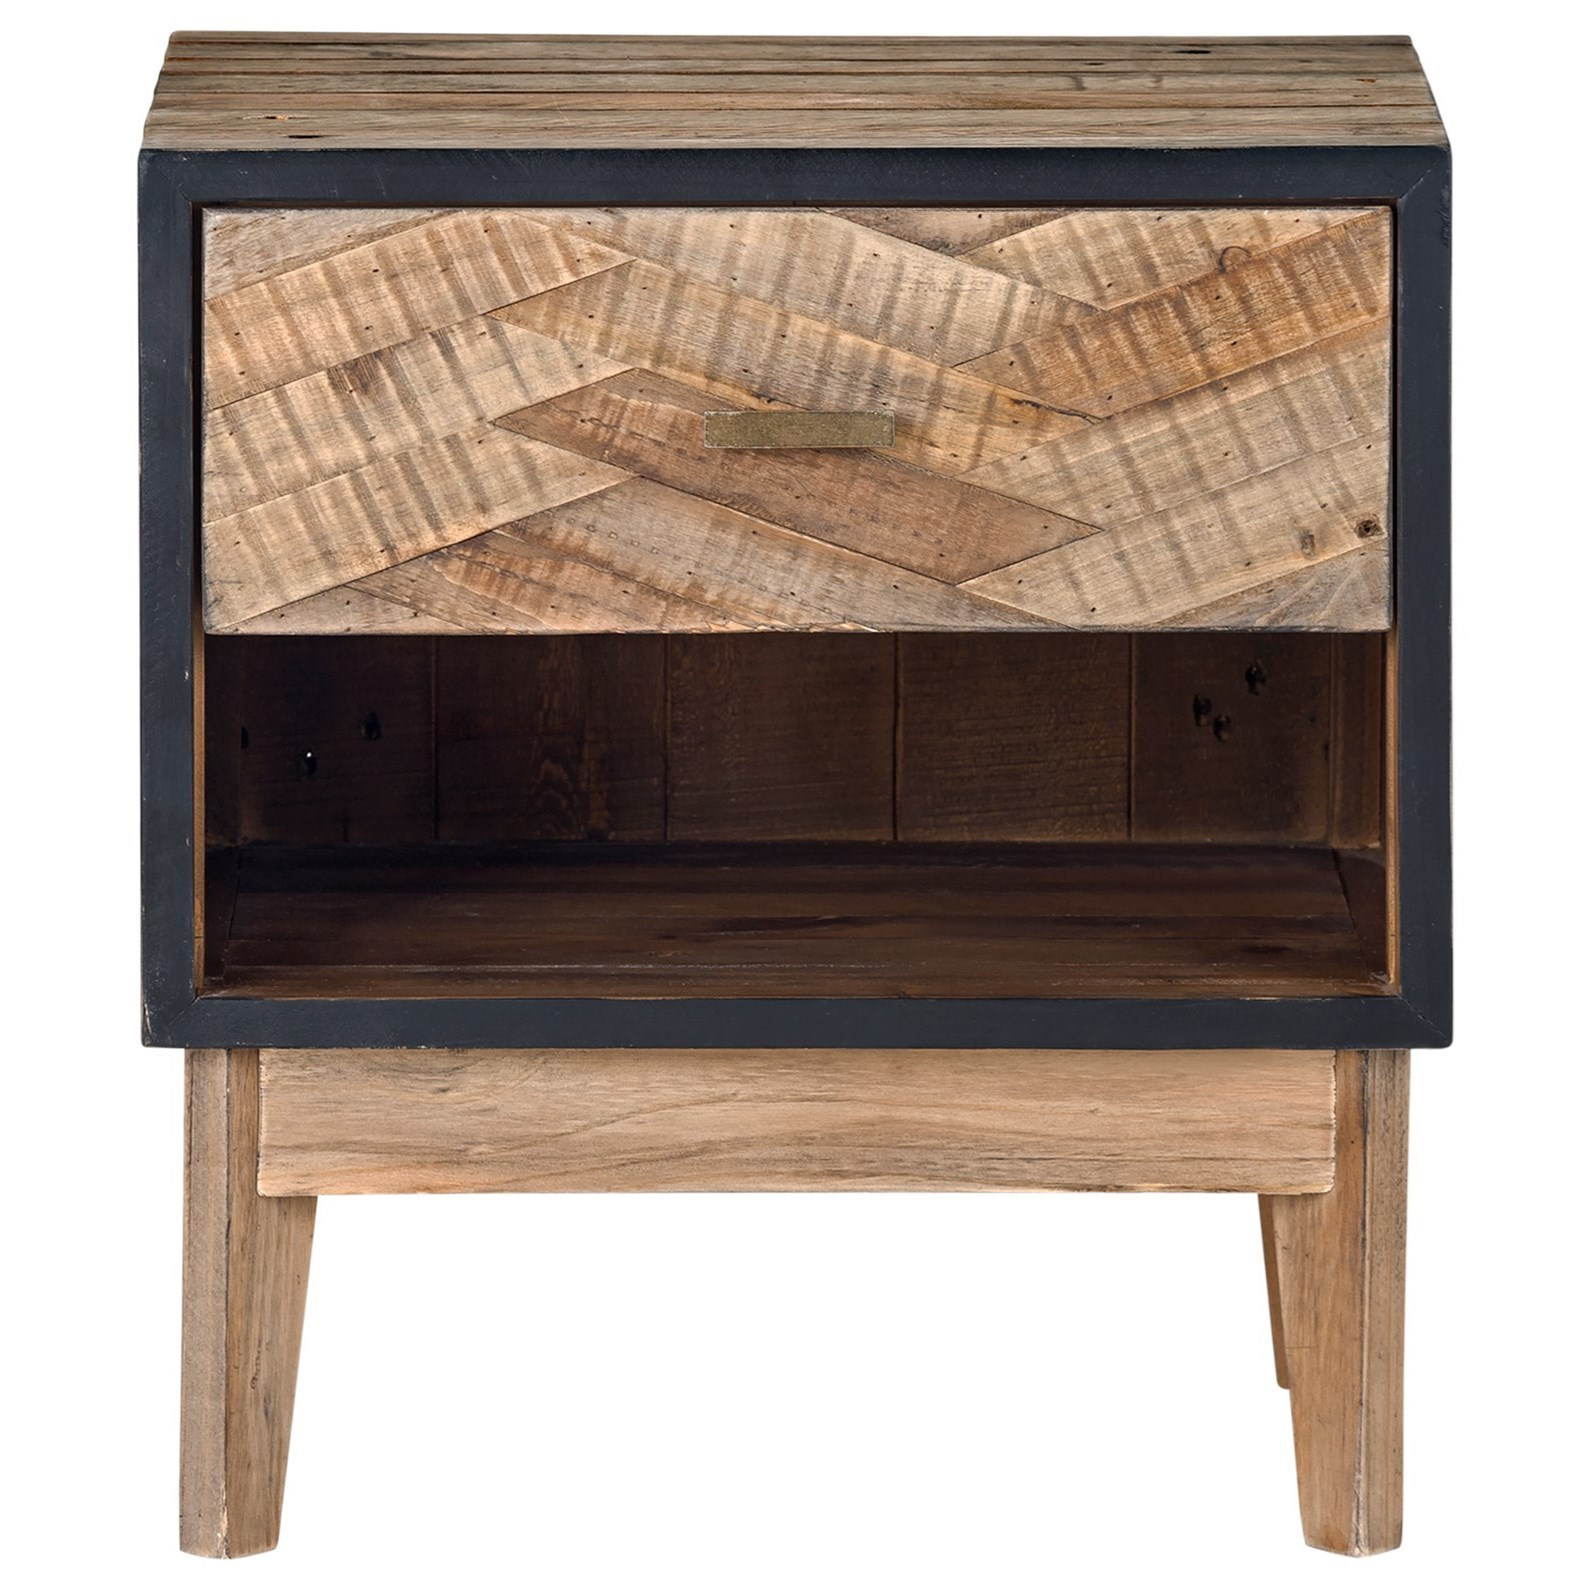 Moe S Home Collection Otero Rustic Industrial Nightstand